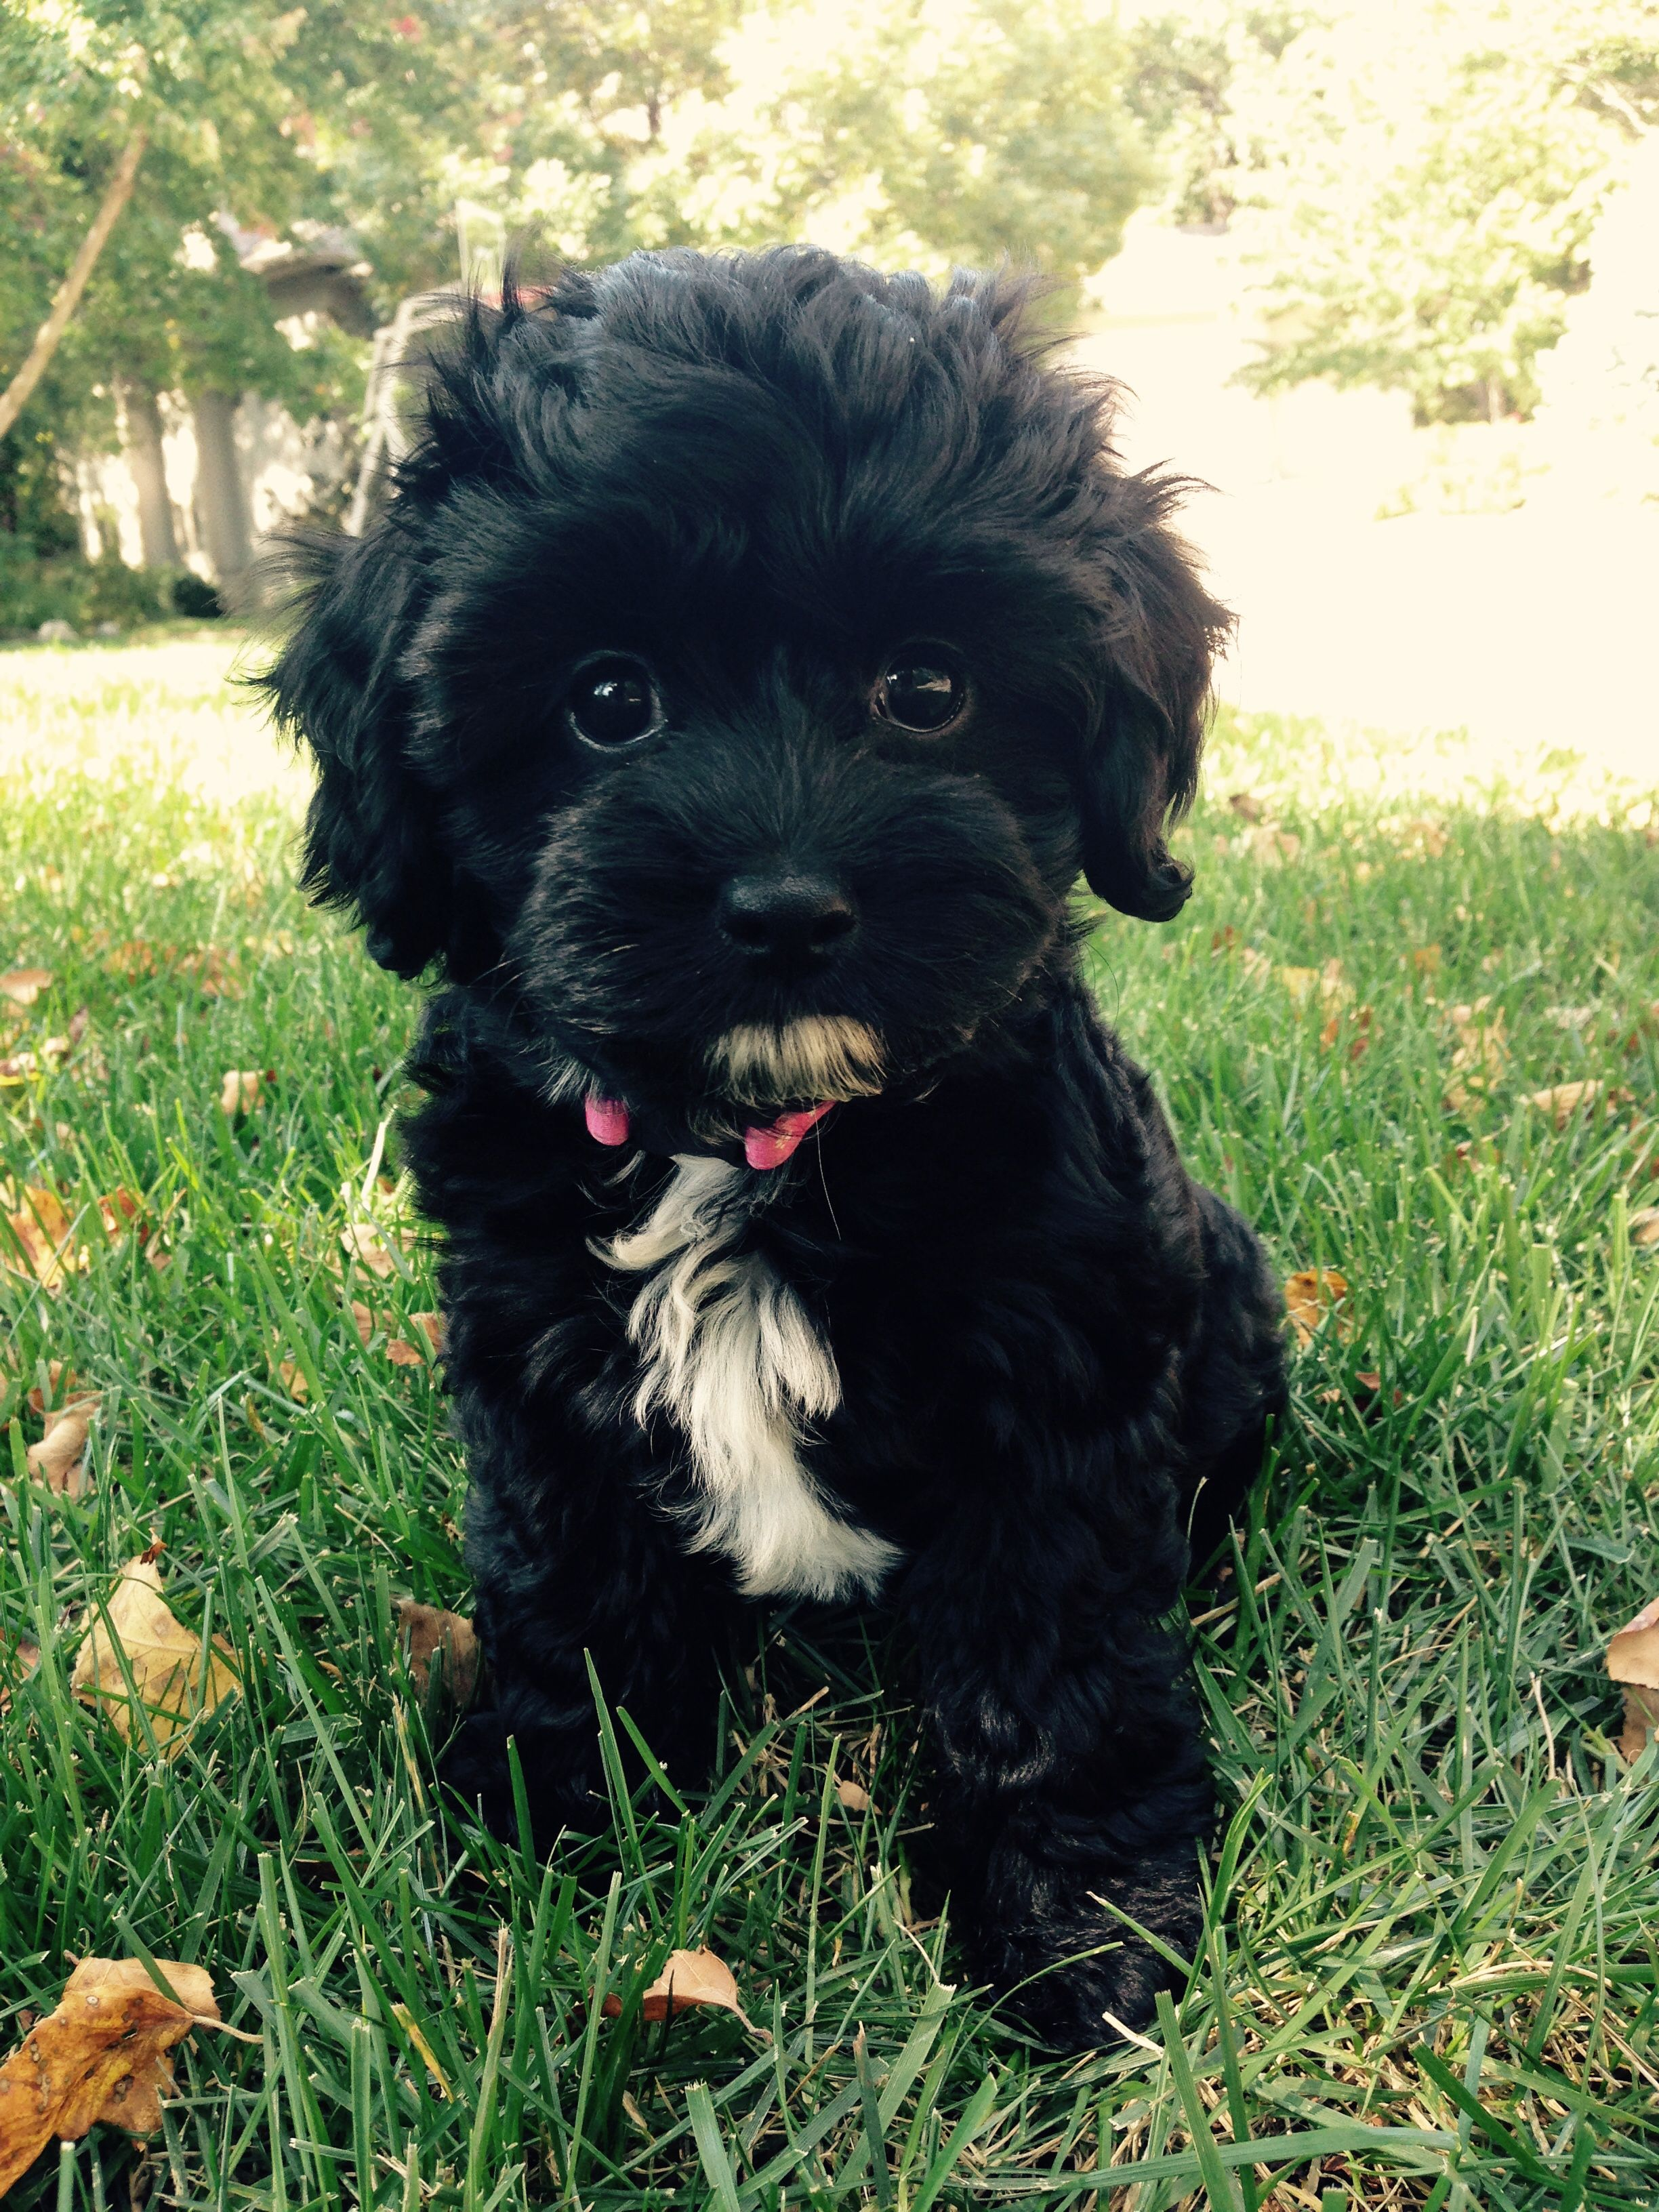 Picture Perfect Puppy For More Cavapoo Puppy Pictures Go To